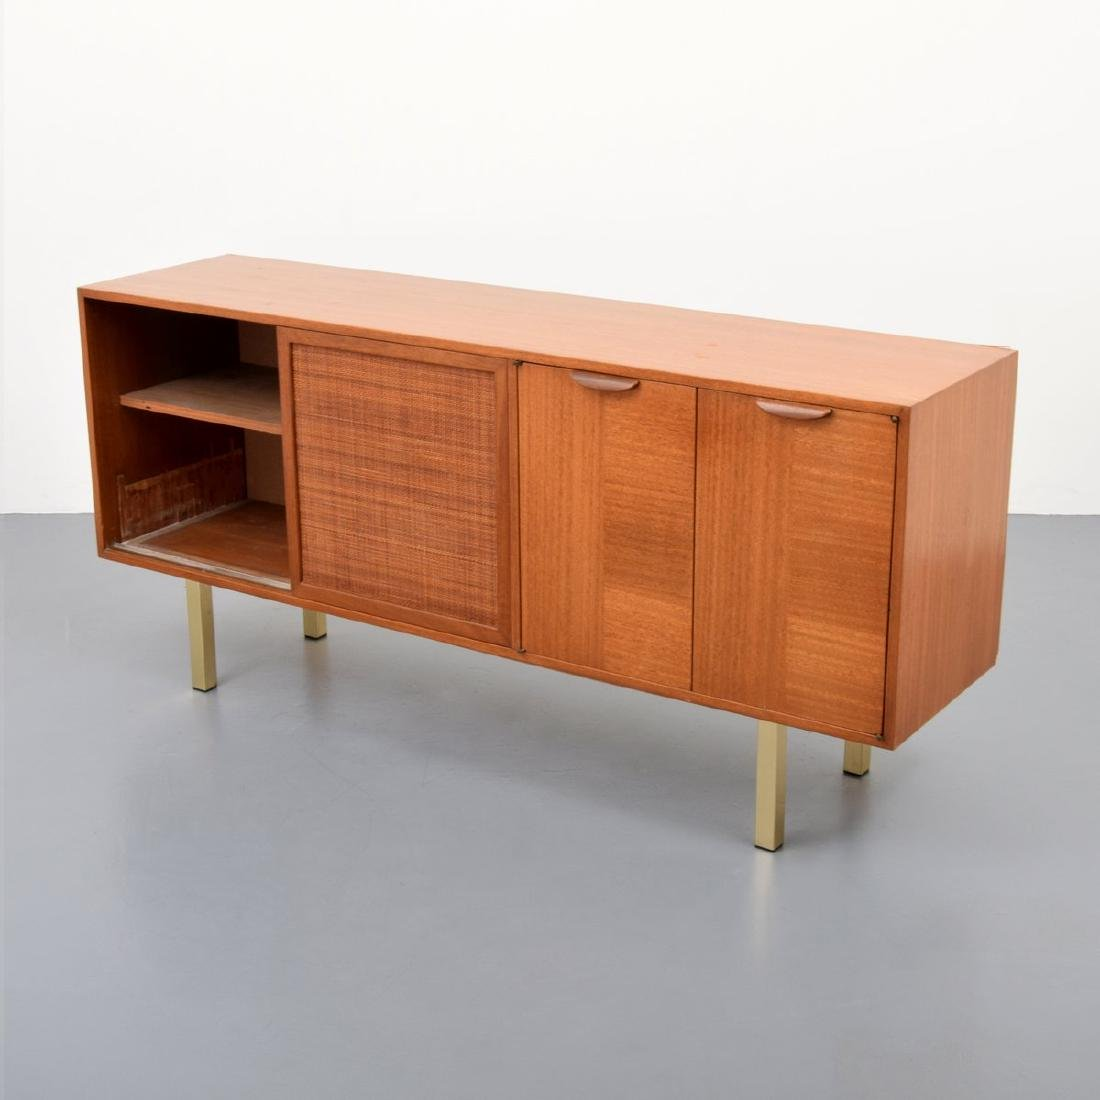 Harvey Probber Cabinet - 8